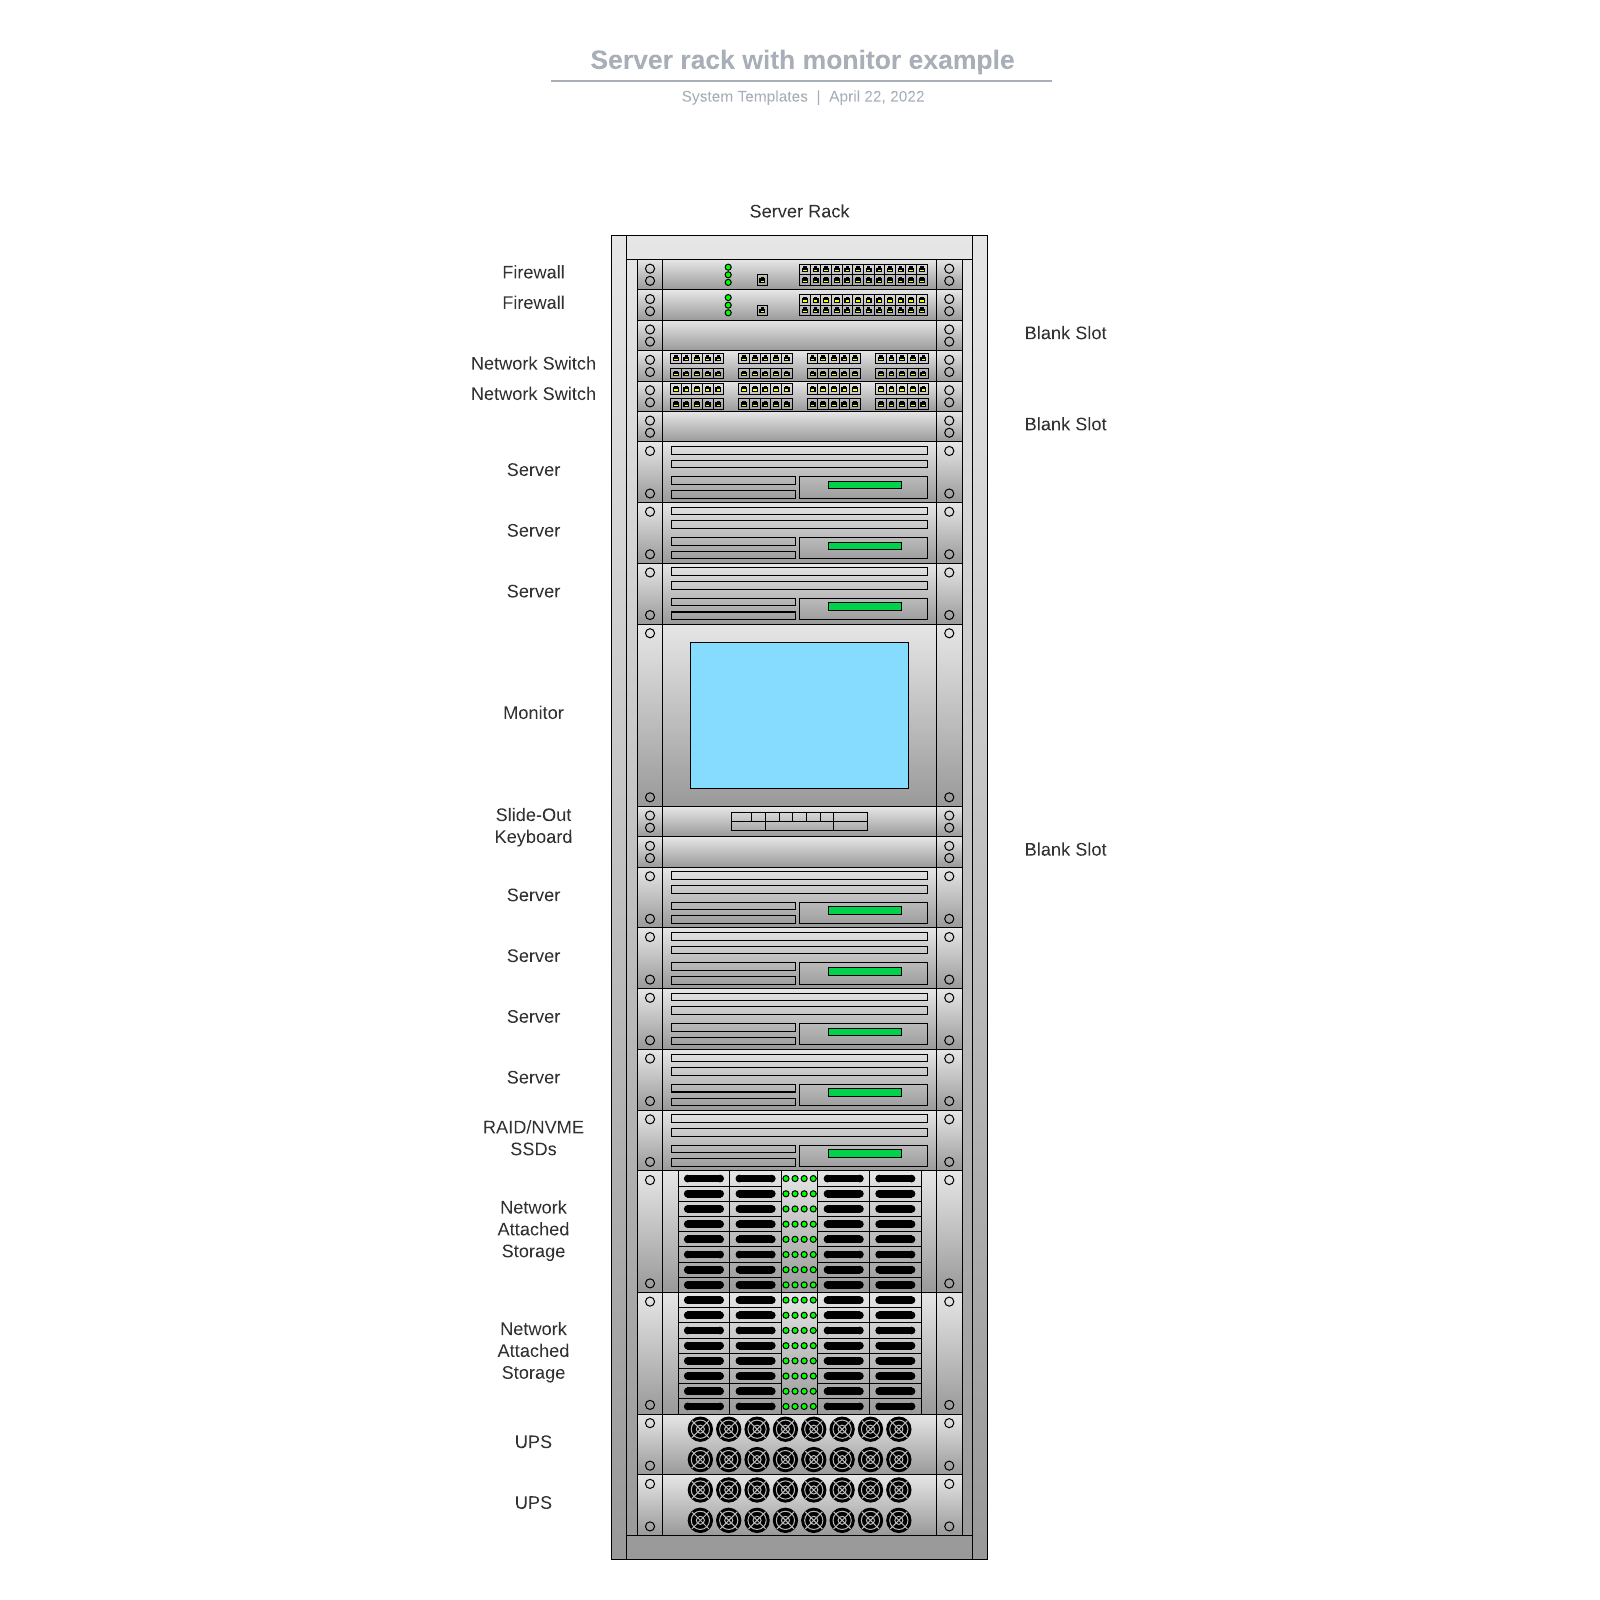 Server rack with monitor example